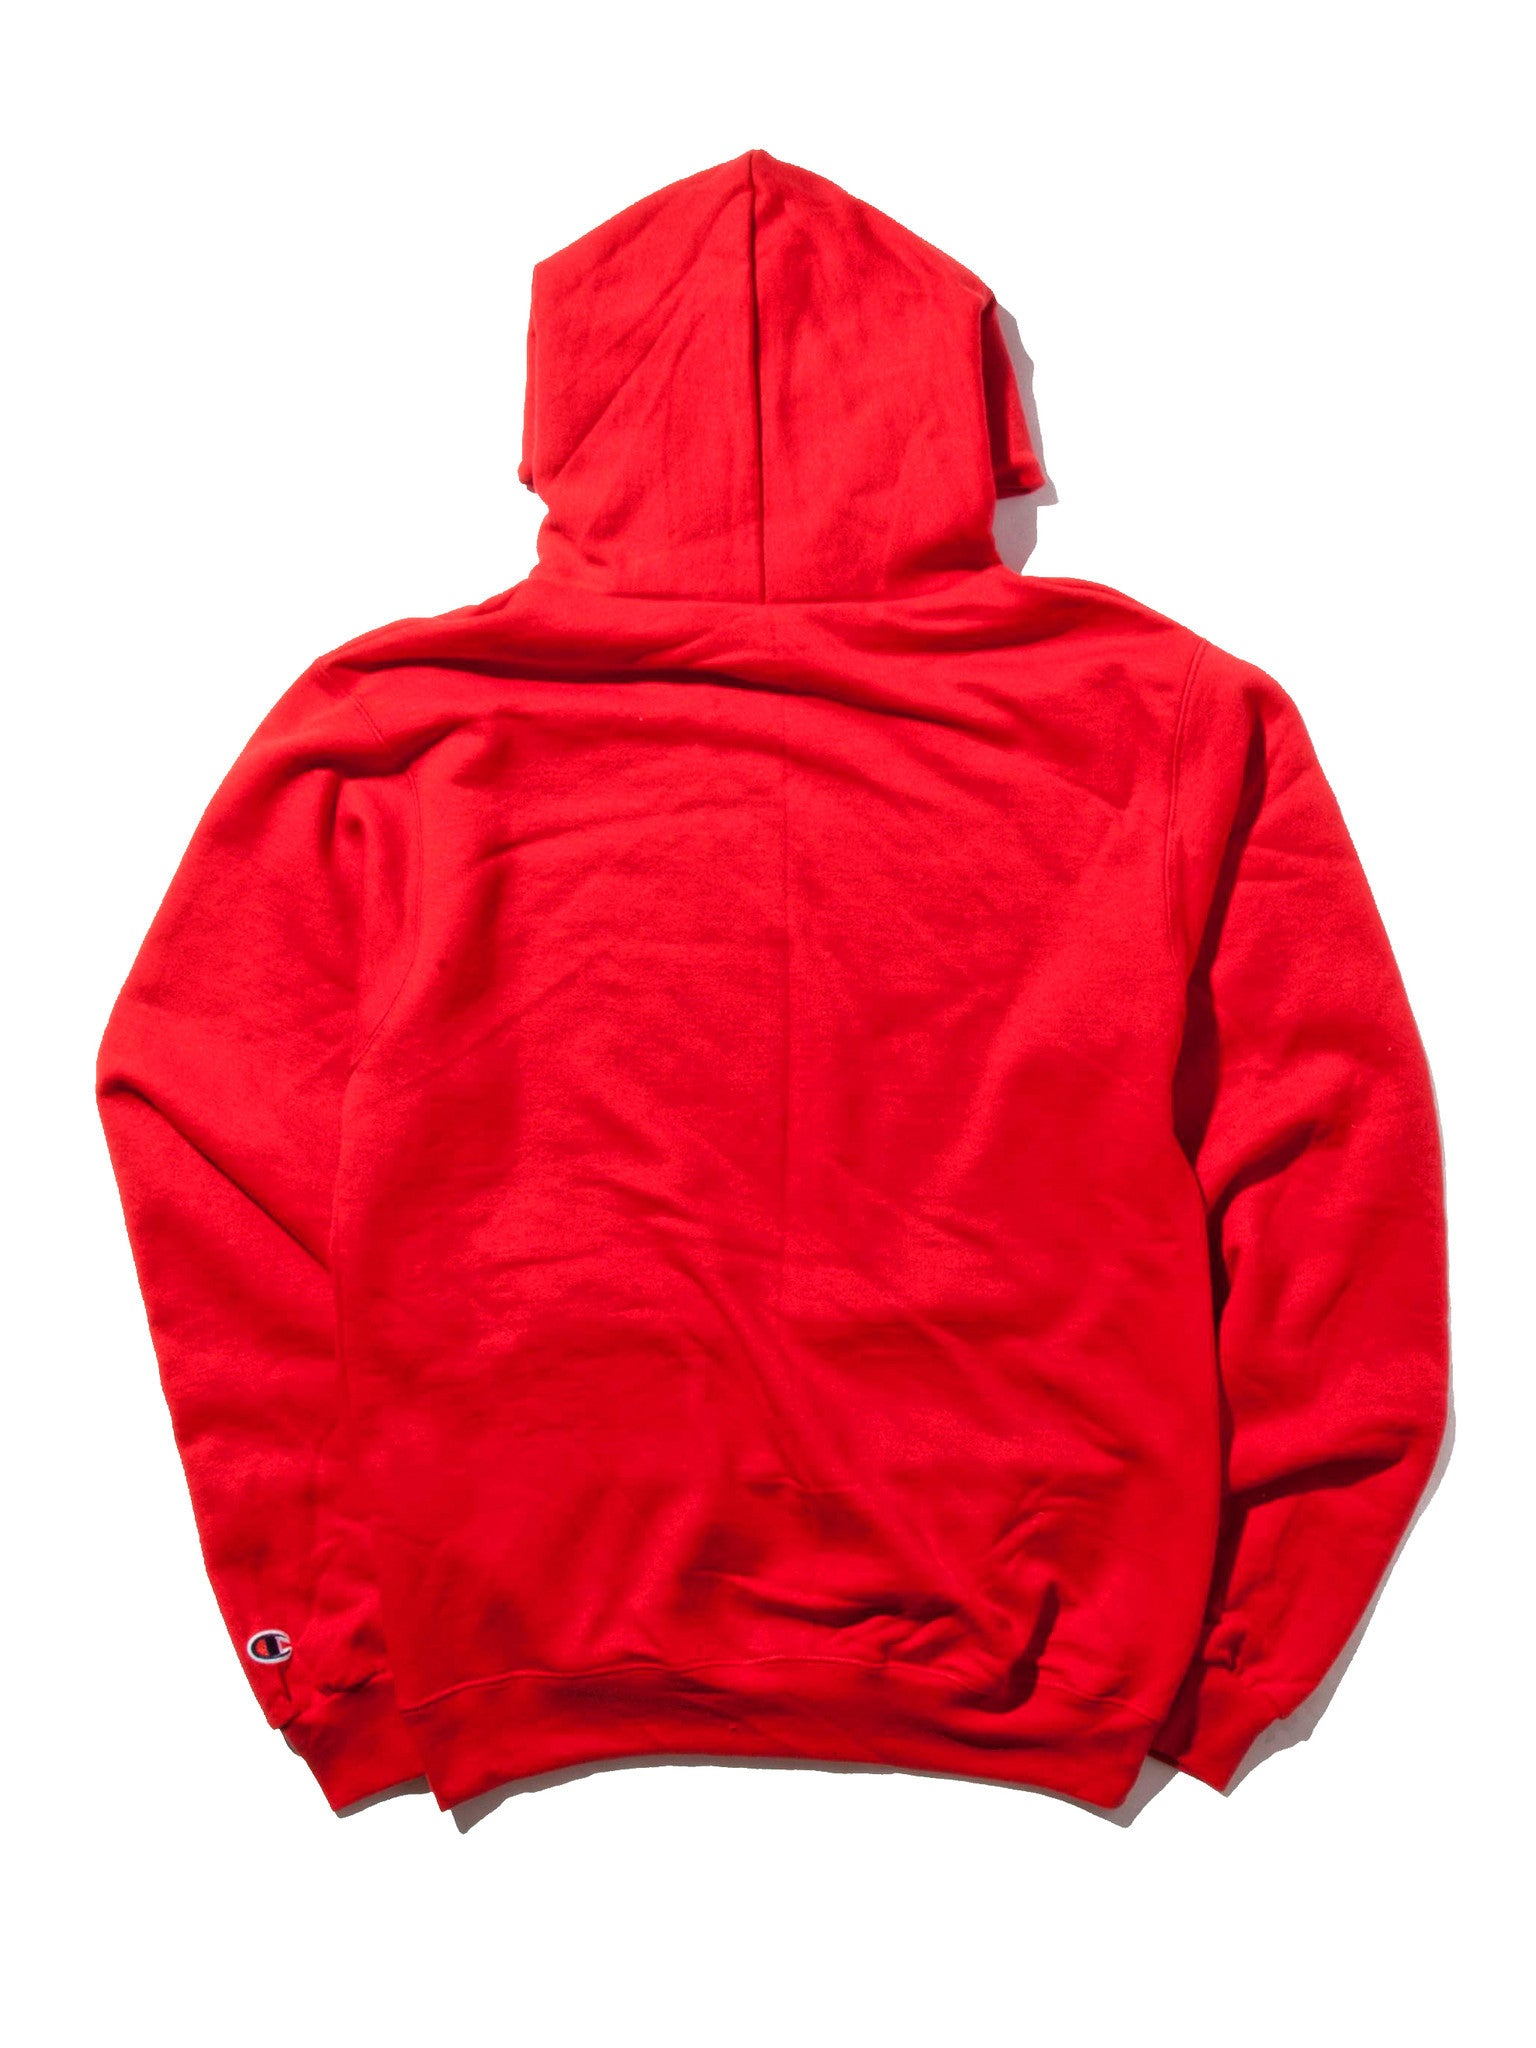 Red Flower Hooded Sweatshirt 9